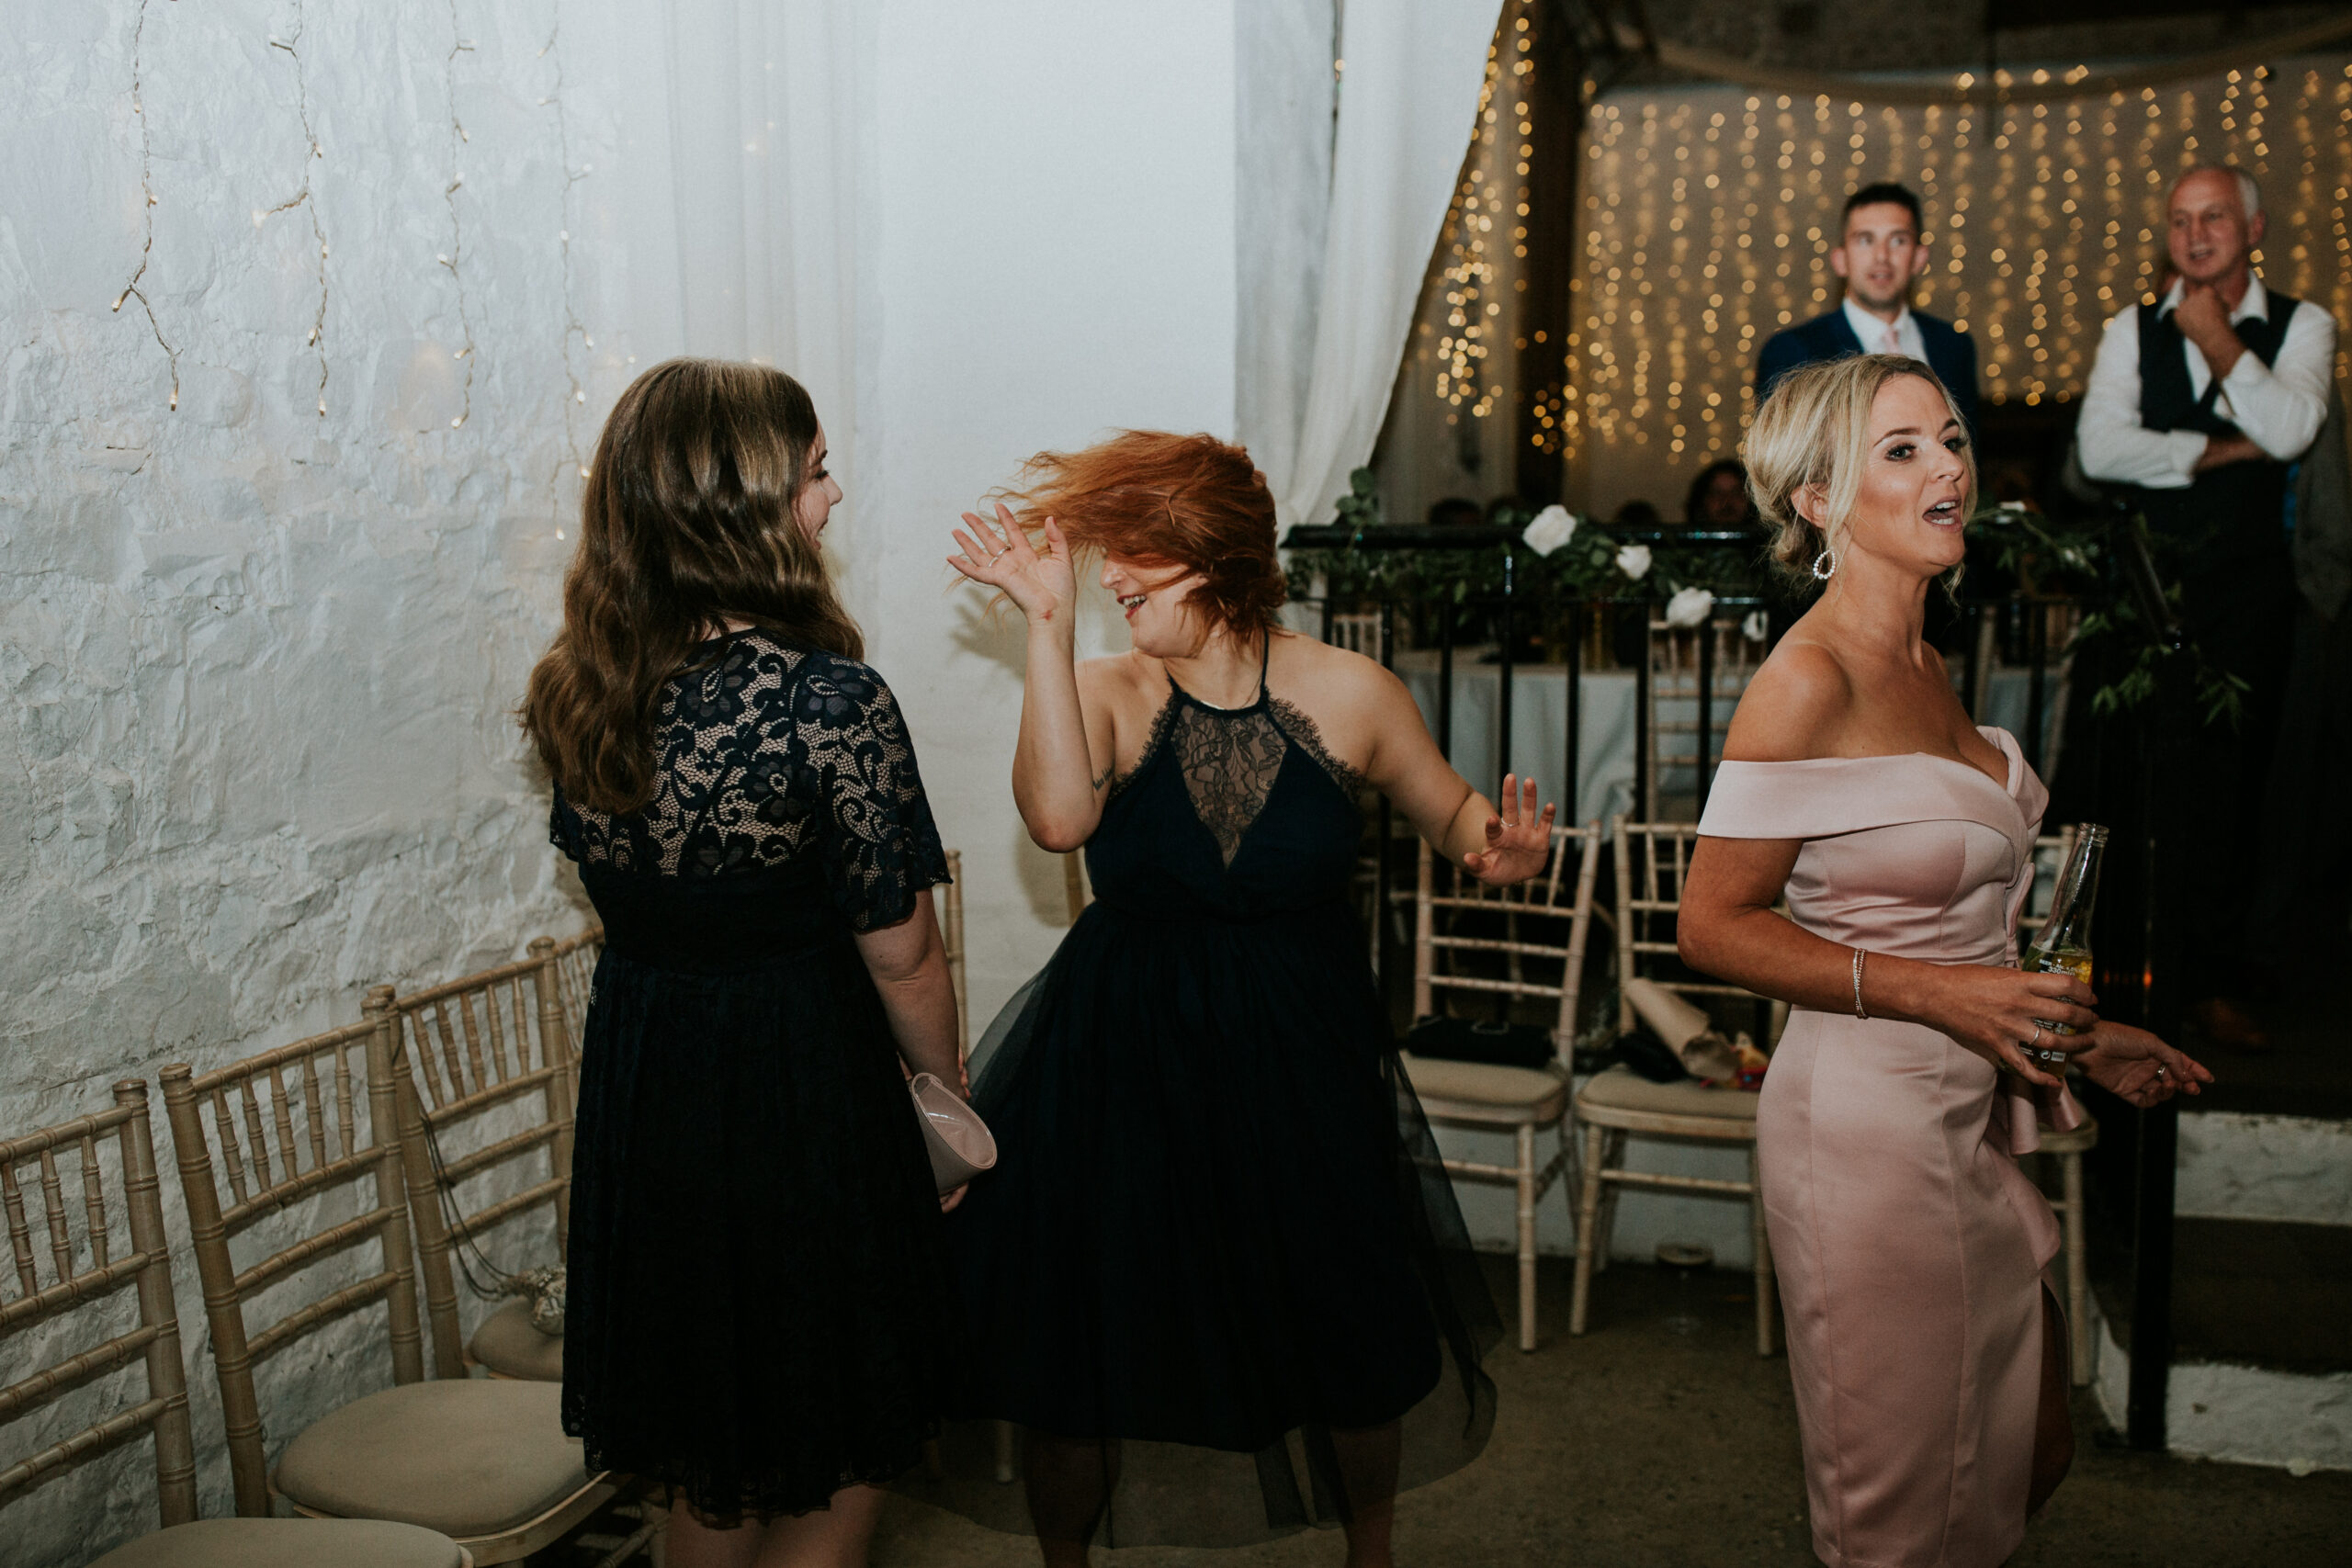 guests dancing and singing